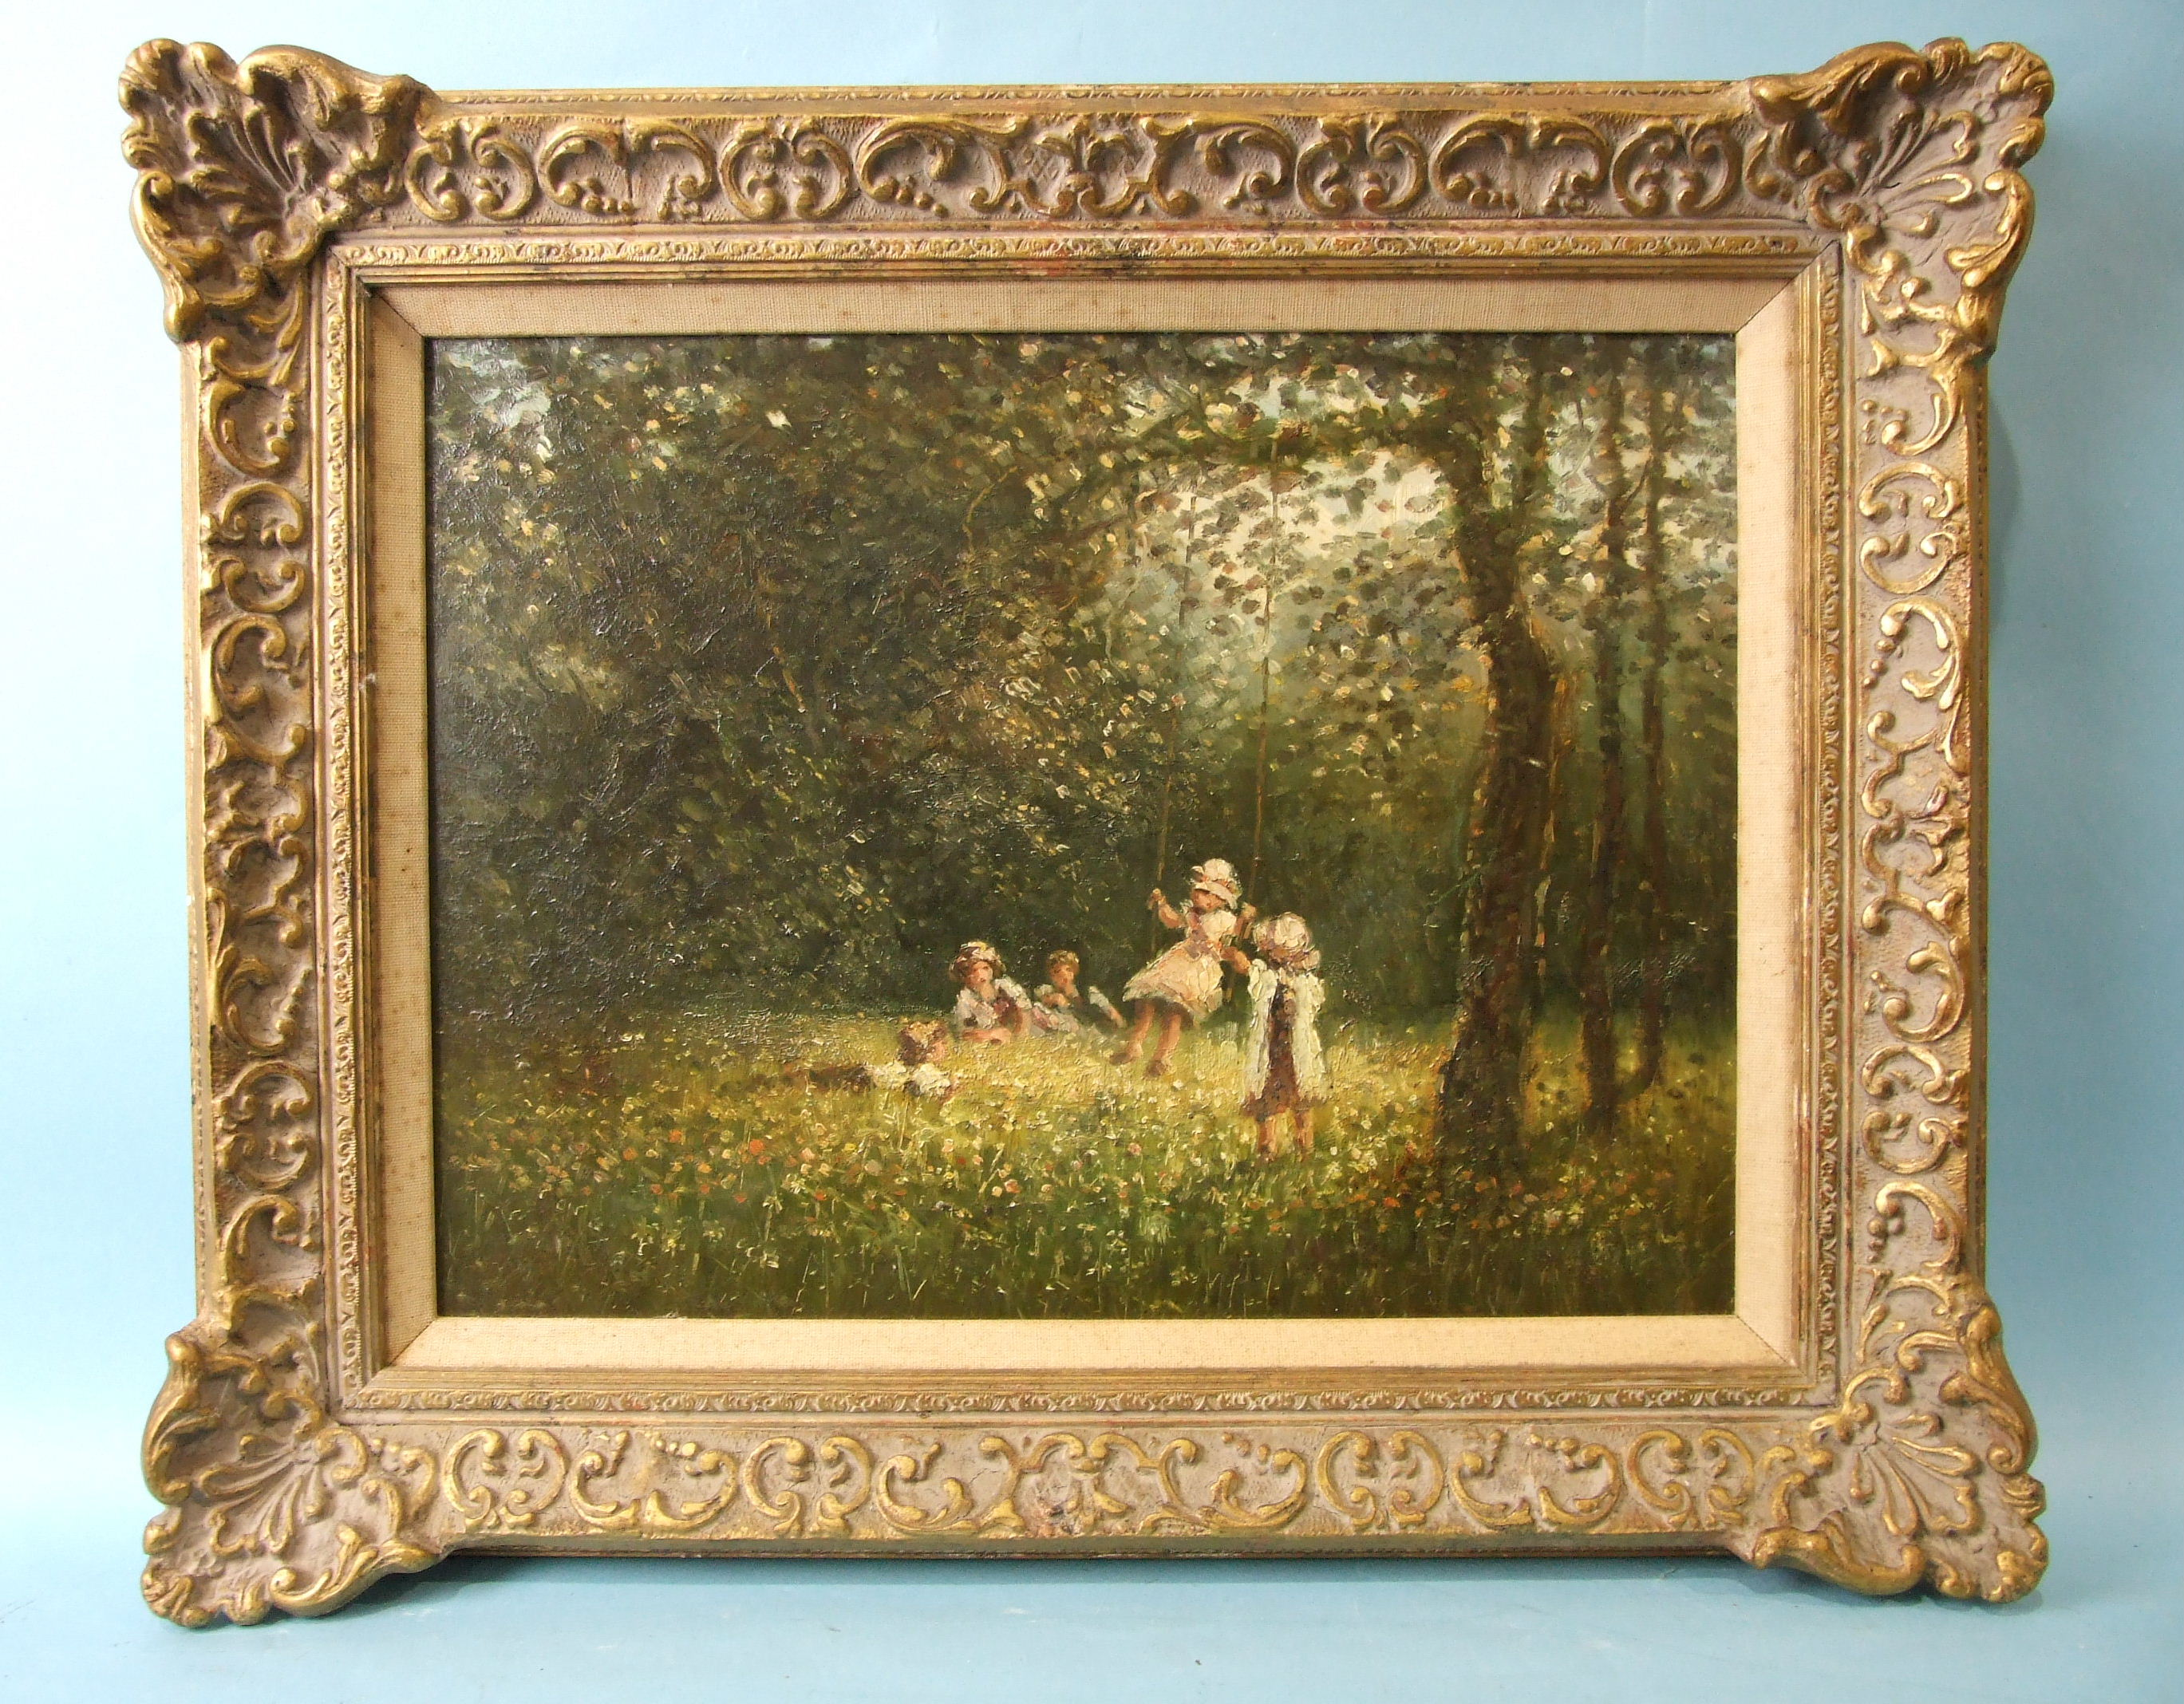 20th century English School CHILDREN PLAYING ON A WOODLAND SWING Unsigned oil on board, 29 x 40cm.